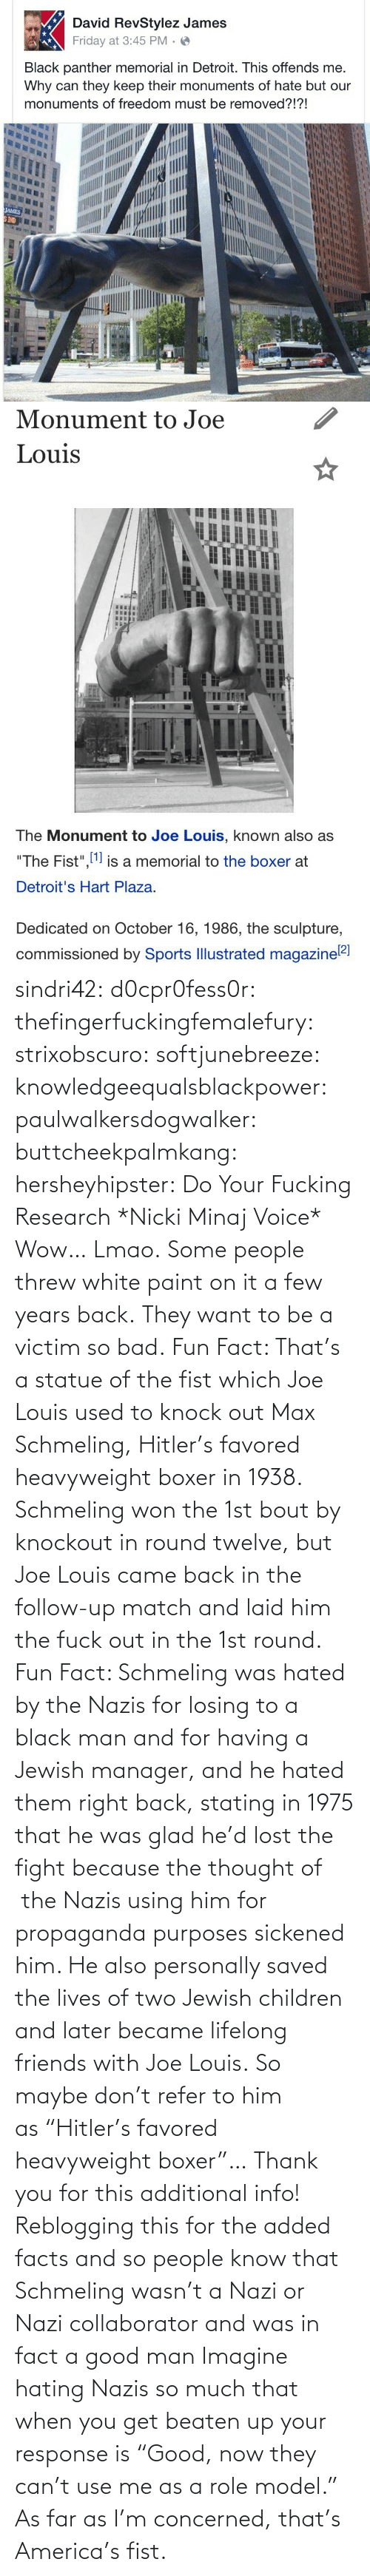 "Back: sindri42:  d0cpr0fess0r:  thefingerfuckingfemalefury:  strixobscuro:  softjunebreeze:  knowledgeequalsblackpower:  paulwalkersdogwalker:   buttcheekpalmkang:   hersheyhipster:  Do Your Fucking Research *Nicki Minaj Voice*    Wow… Lmao.   Some people threw white paint on it a few years back.   They want to be a victim so bad.  Fun Fact: That's a statue of the fist which Joe Louis used to knock out Max Schmeling, Hitler's favored heavyweight boxer in 1938. Schmeling won the 1st bout by knockout in round twelve, but Joe Louis came back in the follow-up match and laid him the fuck out in the 1st round.  Fun Fact: Schmeling was hated by the Nazis for losing to a black man and for having a Jewish manager, and he hated them right back, stating in 1975 that he was glad he'd lost the fight because the thought of  the Nazis using him for propaganda purposes sickened him. He also personally saved the lives of two Jewish children and later became lifelong friends with Joe Louis. So maybe don't refer to him as ""Hitler's favored heavyweight boxer""…  Thank you for this additional info! Reblogging this for the added facts and so people know that Schmeling wasn't a Nazi or Nazi collaborator and was in fact a good man   Imagine hating Nazis so much that when you get beaten up your response is ""Good, now they can't use me as a role model.""  As far as I'm concerned, that's America's fist."